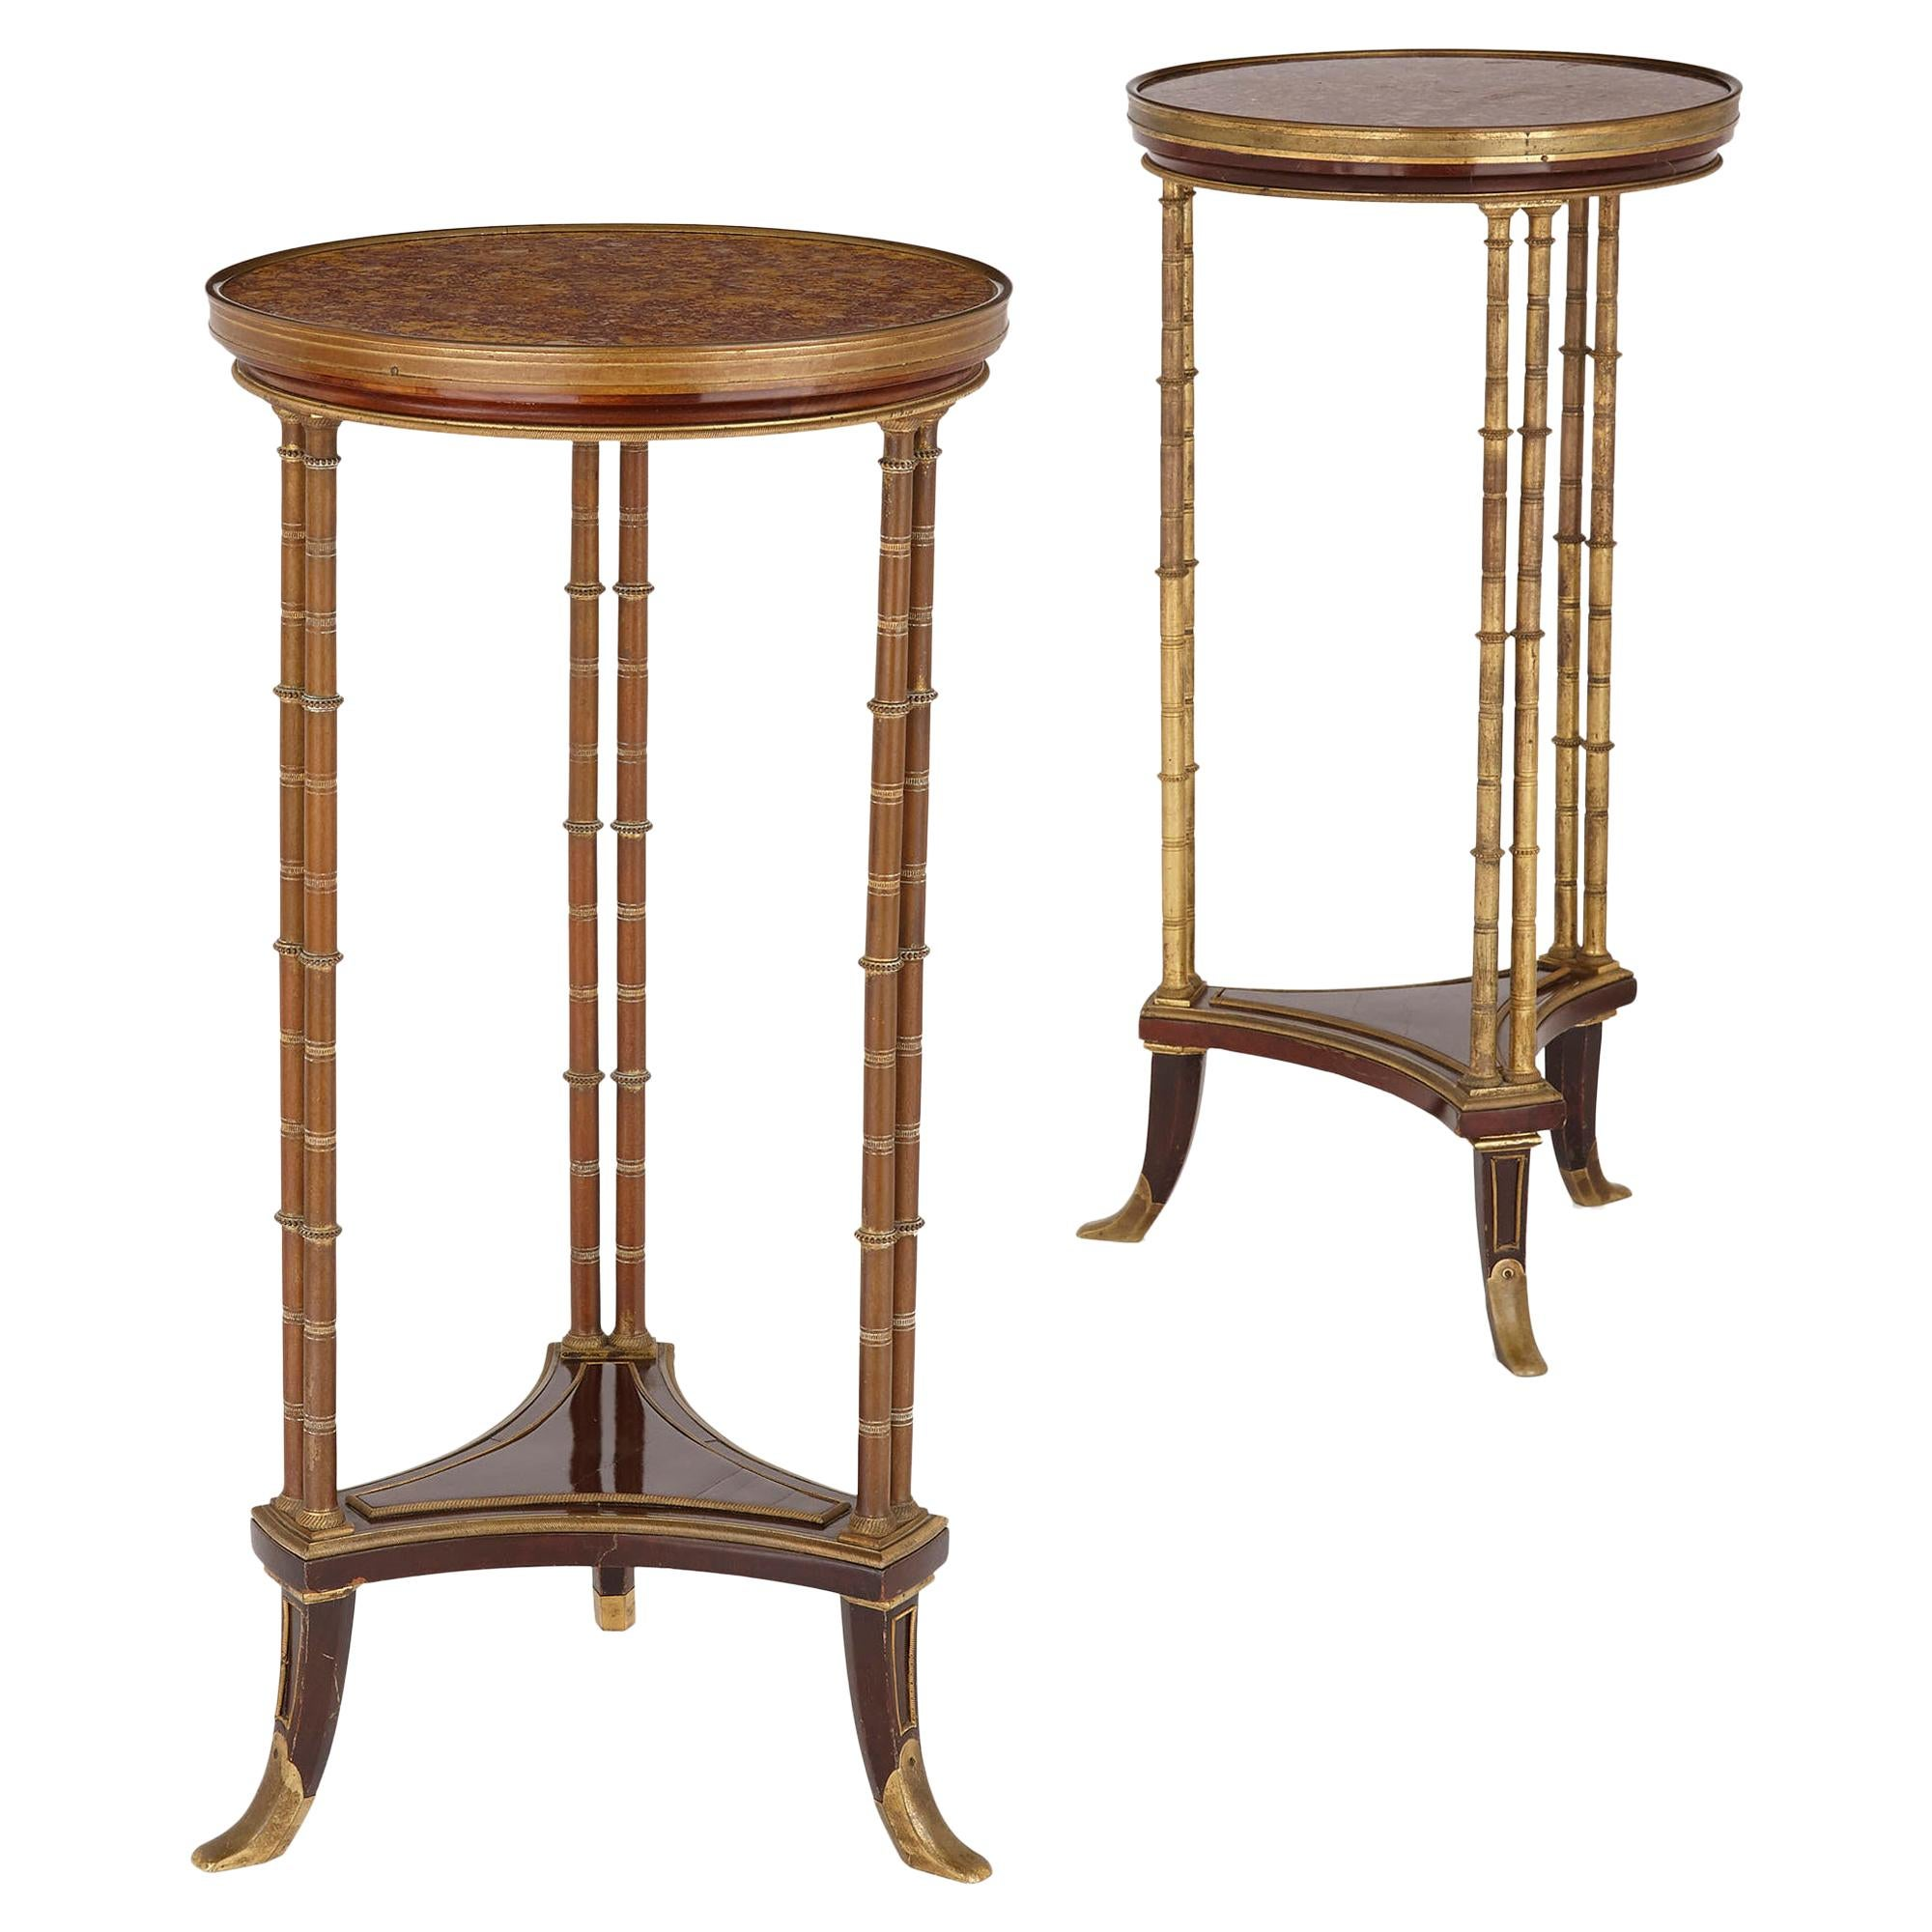 Pair of Neoclassical Style Round Side Tables, Manner of Adam Weisweiler